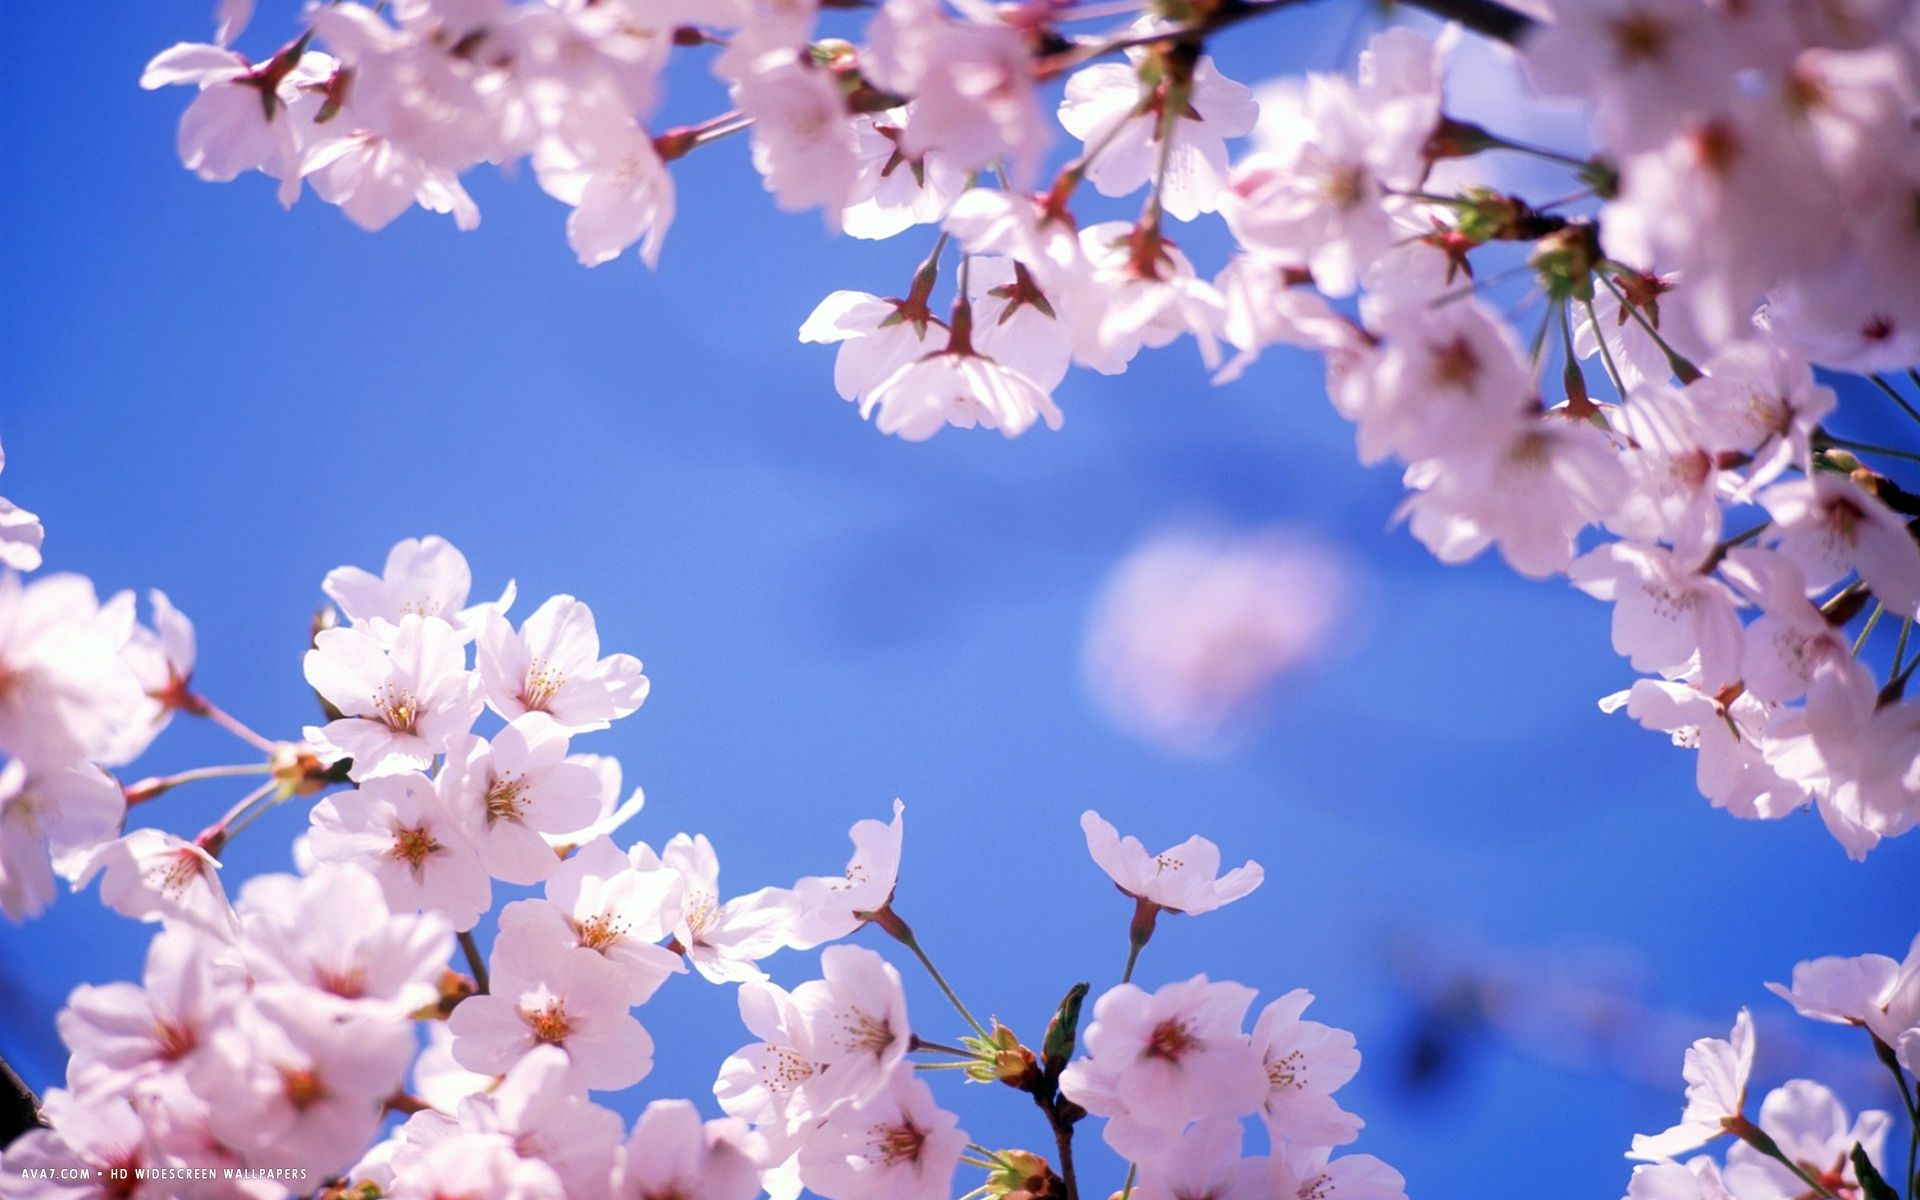 Cherry Blossom Background PowerPoint Backgrounds for